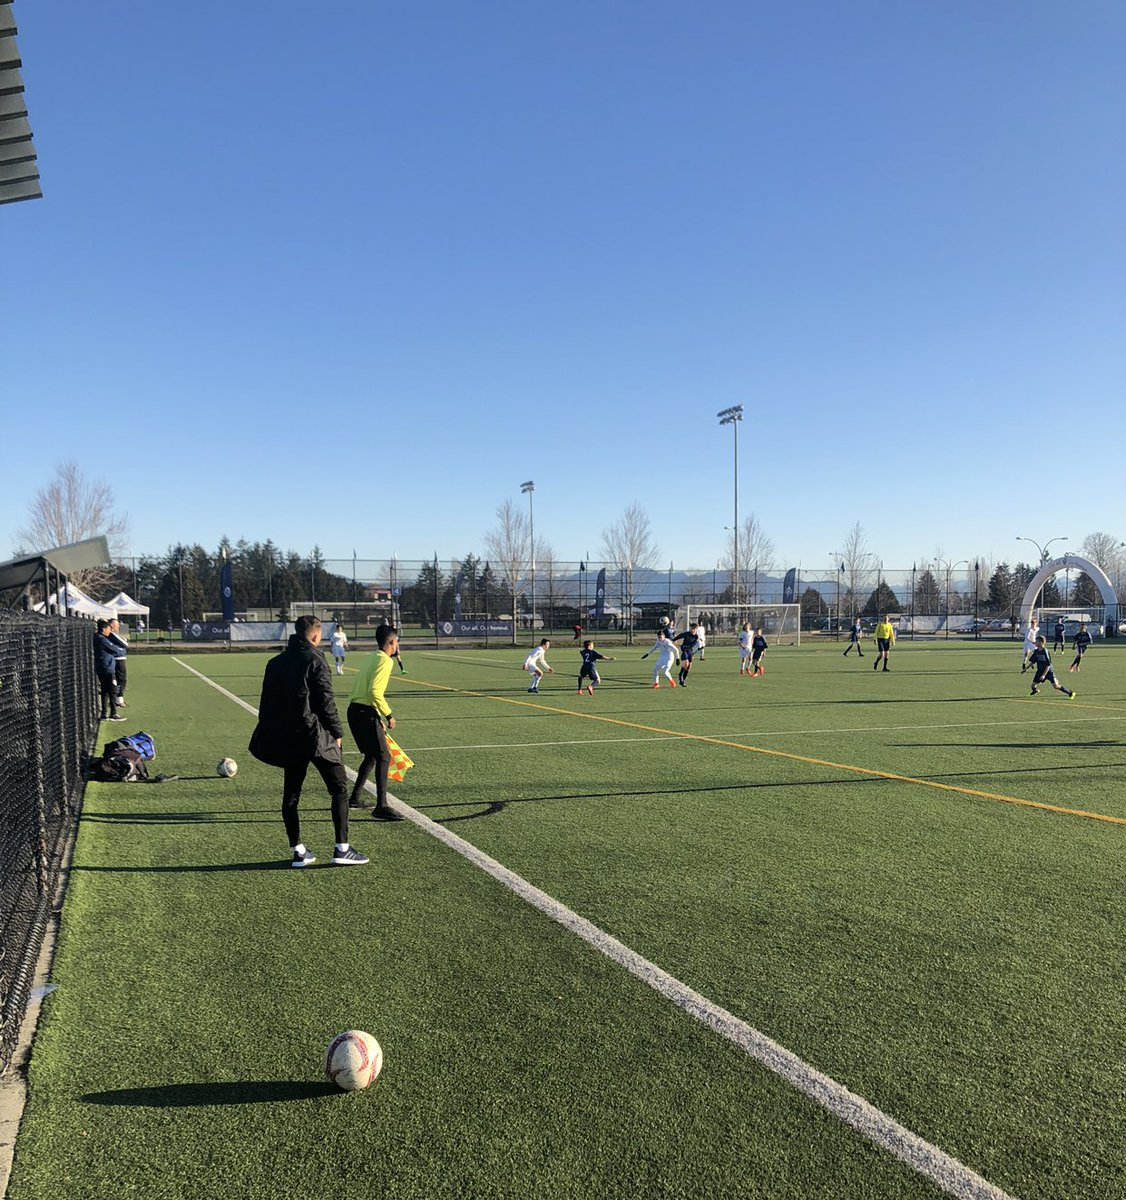 Another valuable year of coaching experience banked🔐 Thanks @AlbertaSoccer for the opportunity to lead the 2005 boys group this year  Shout out @MarinosPaps & the rest of the @WhitecapsYouth staff for another successful Combine for an exciting crop of players around the country